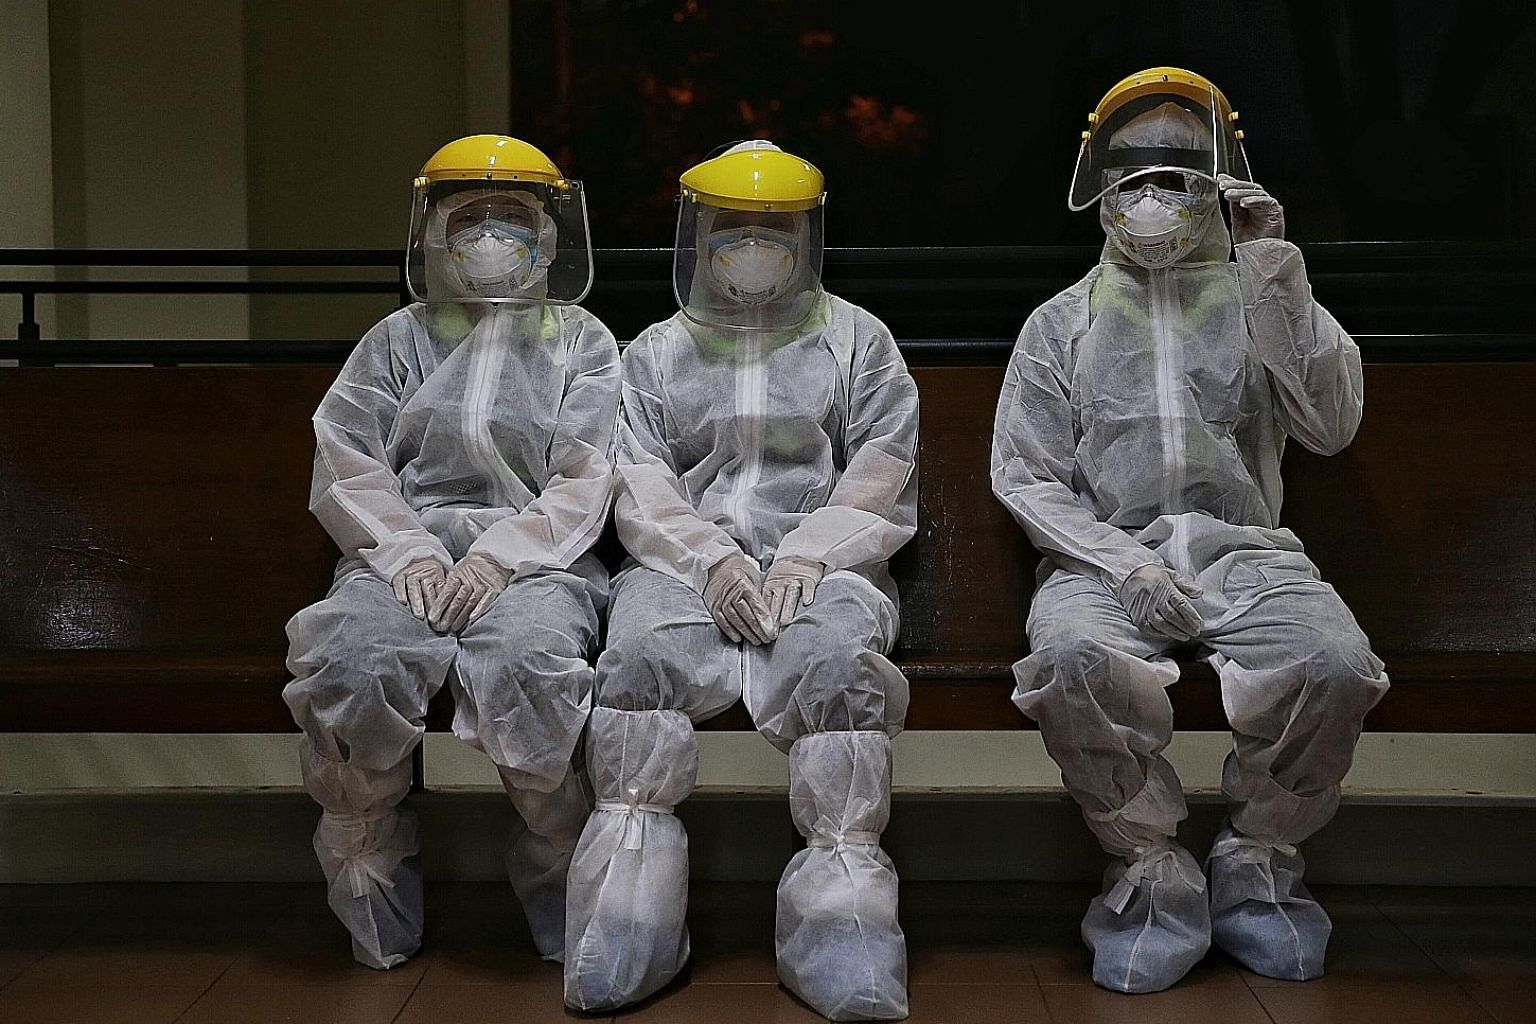 Employees from a cleaning company taking a break after disinfecting a site. Silver Ribbon executive director Porsche Poh said some people have become highly anxious about catching the coronavirus.